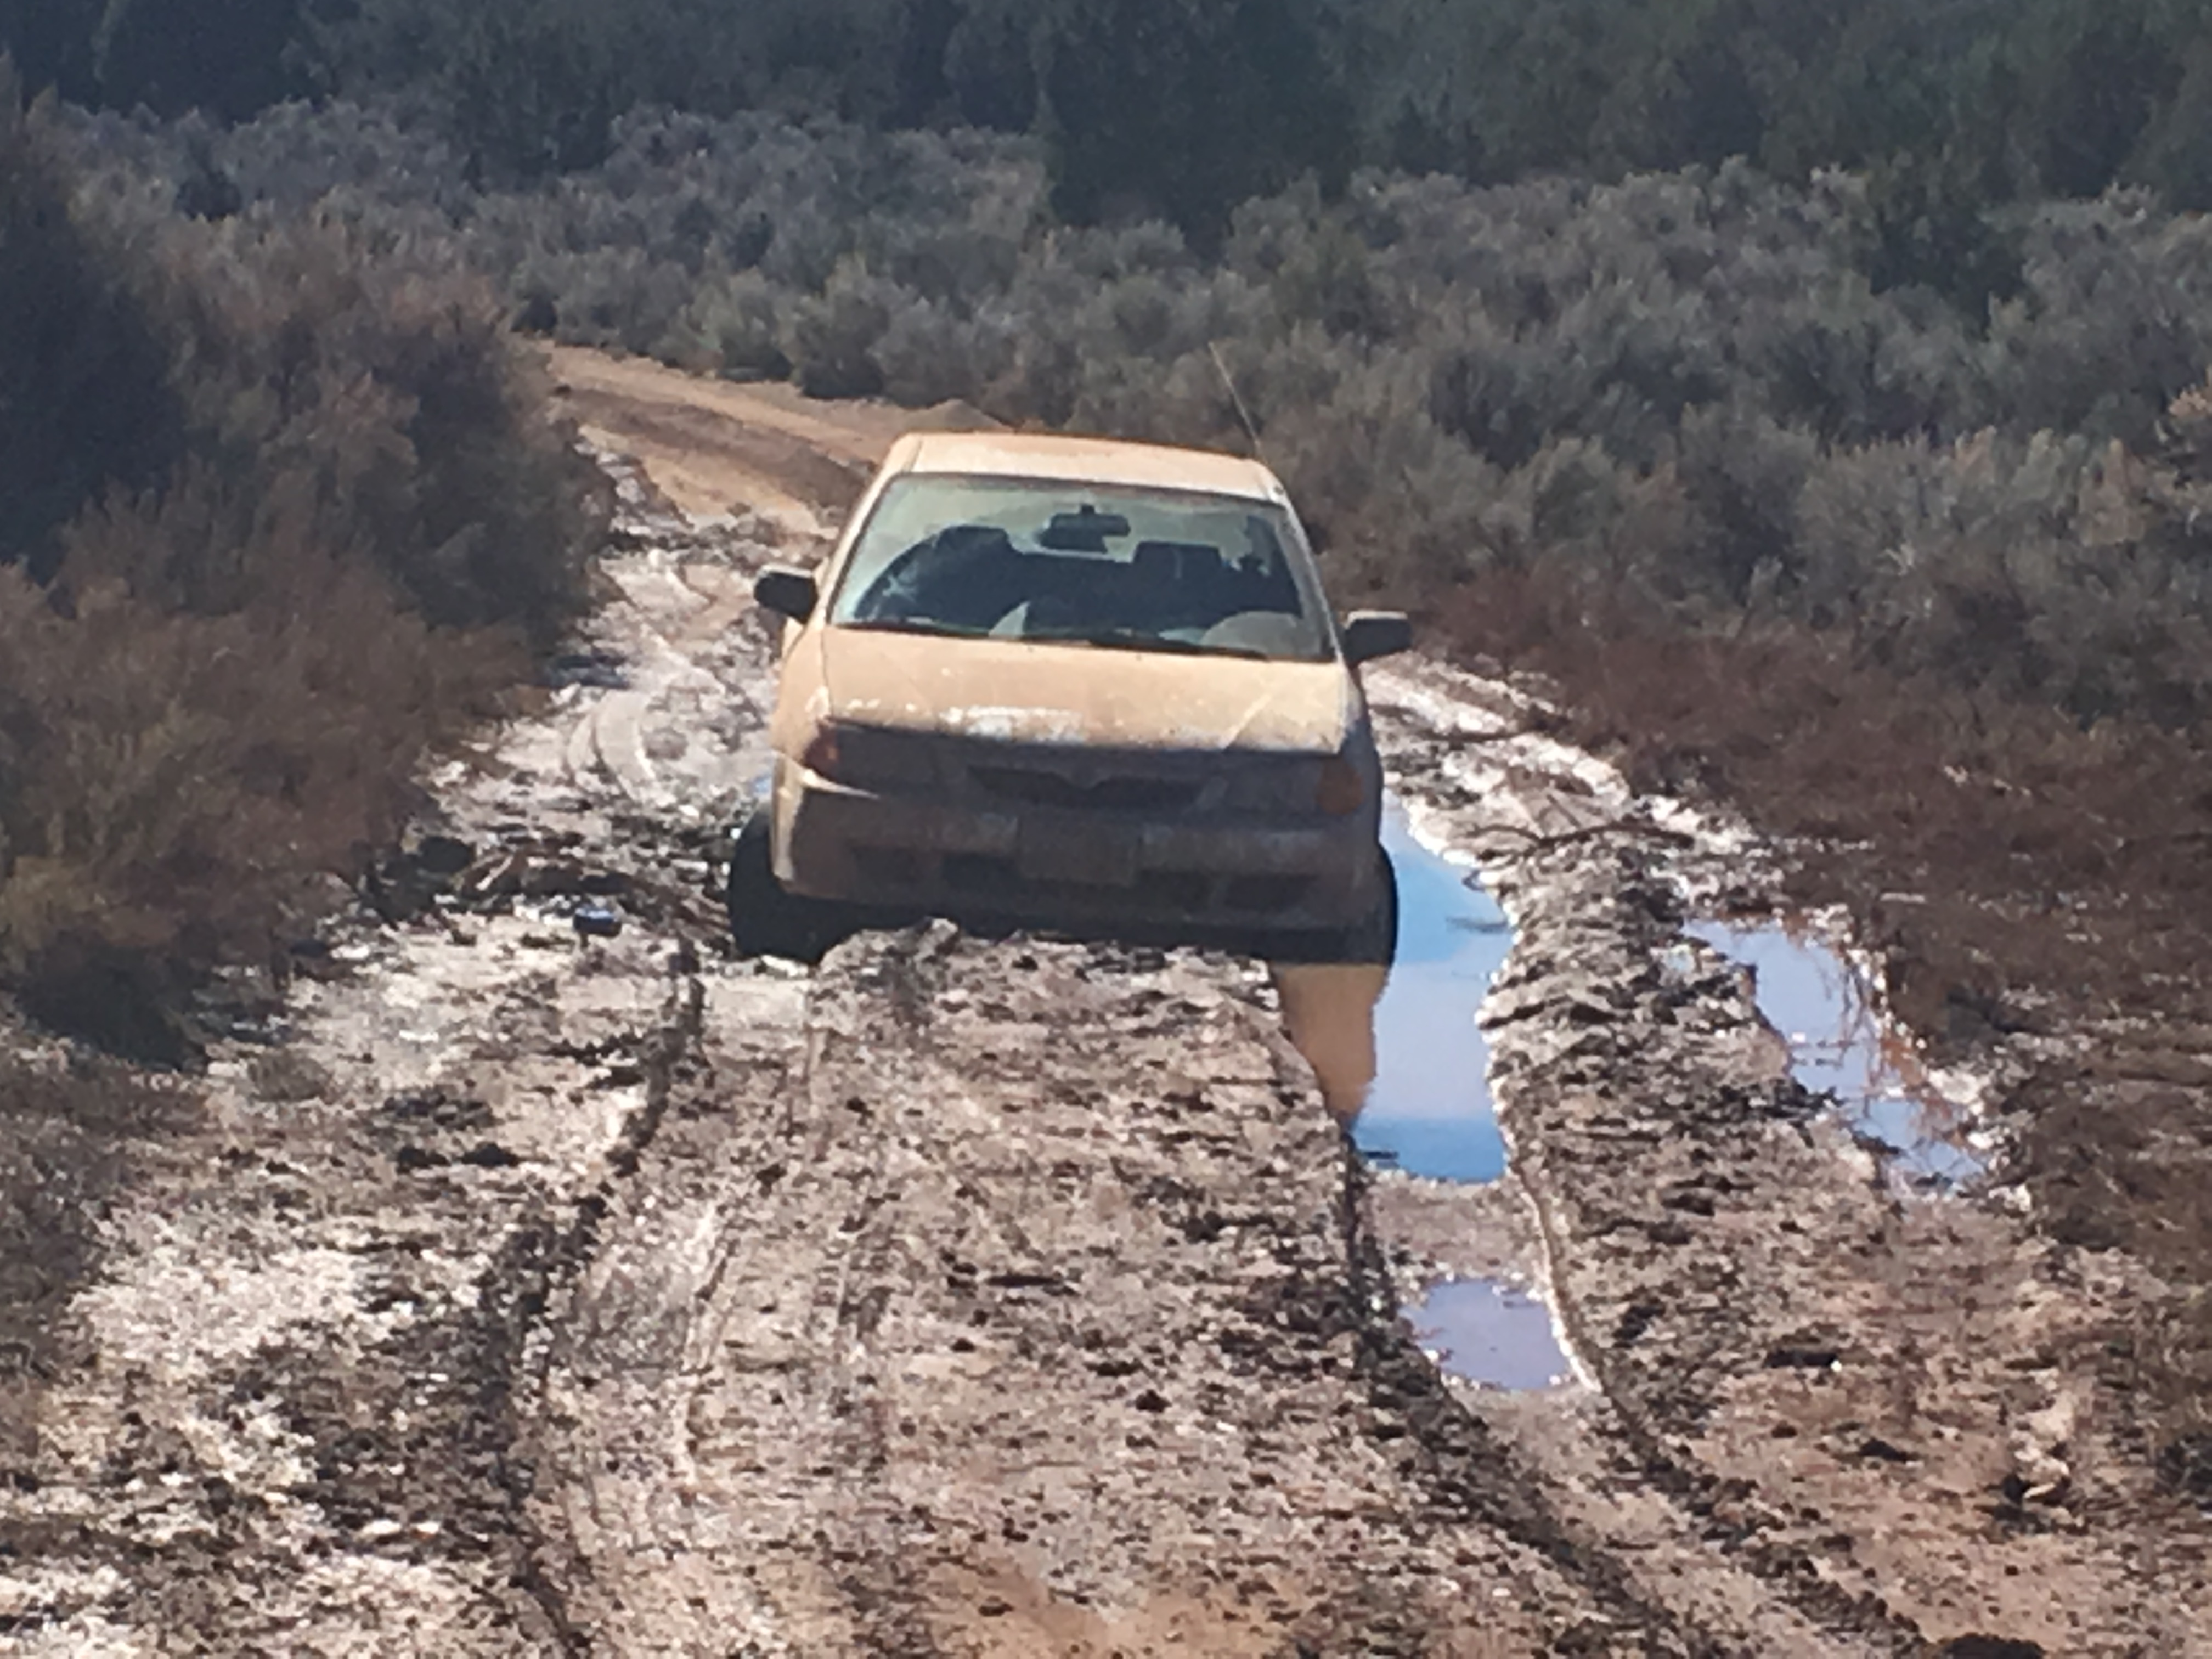 Toyota sedan stuck in deep water and mud on an unpaved road